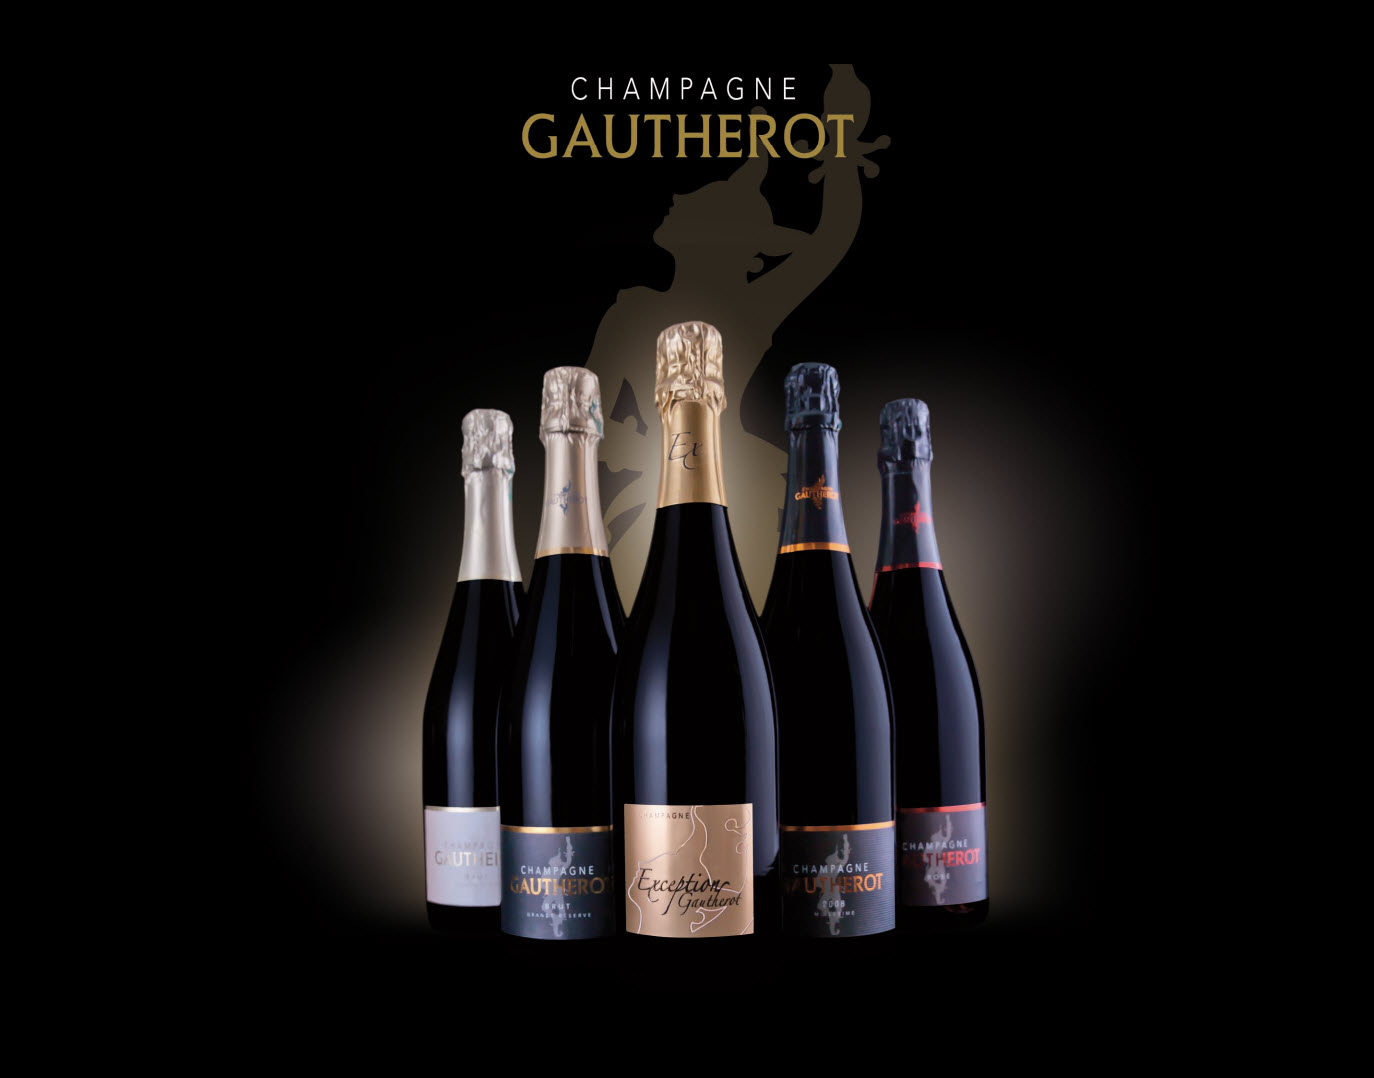 Champagne Gautherot